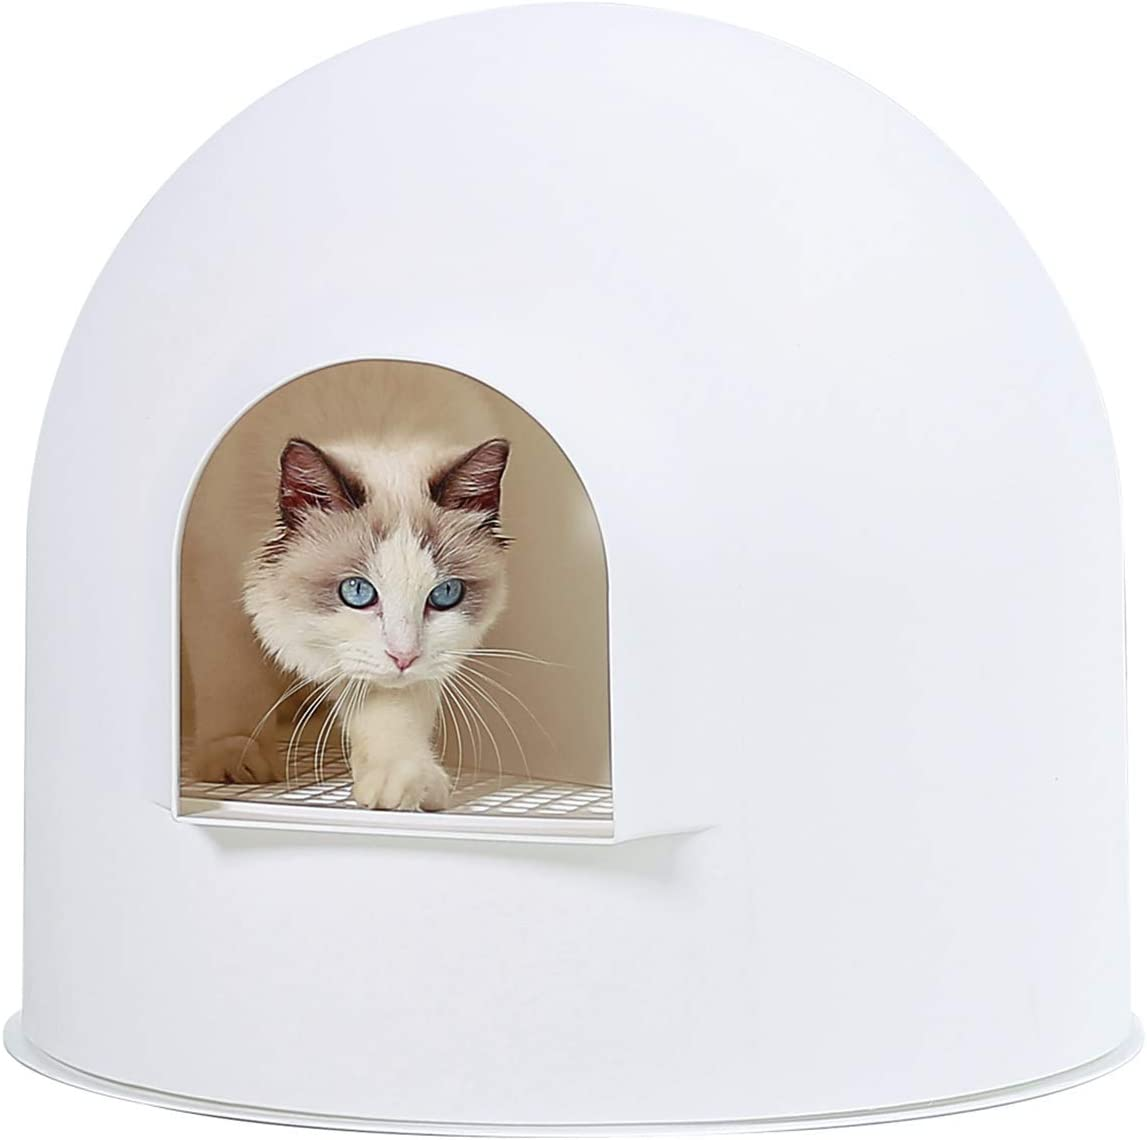 pidan Igloo Genuine Free Shipping Cat Litter Box Today's only Enclosure Covered High lid Dome with